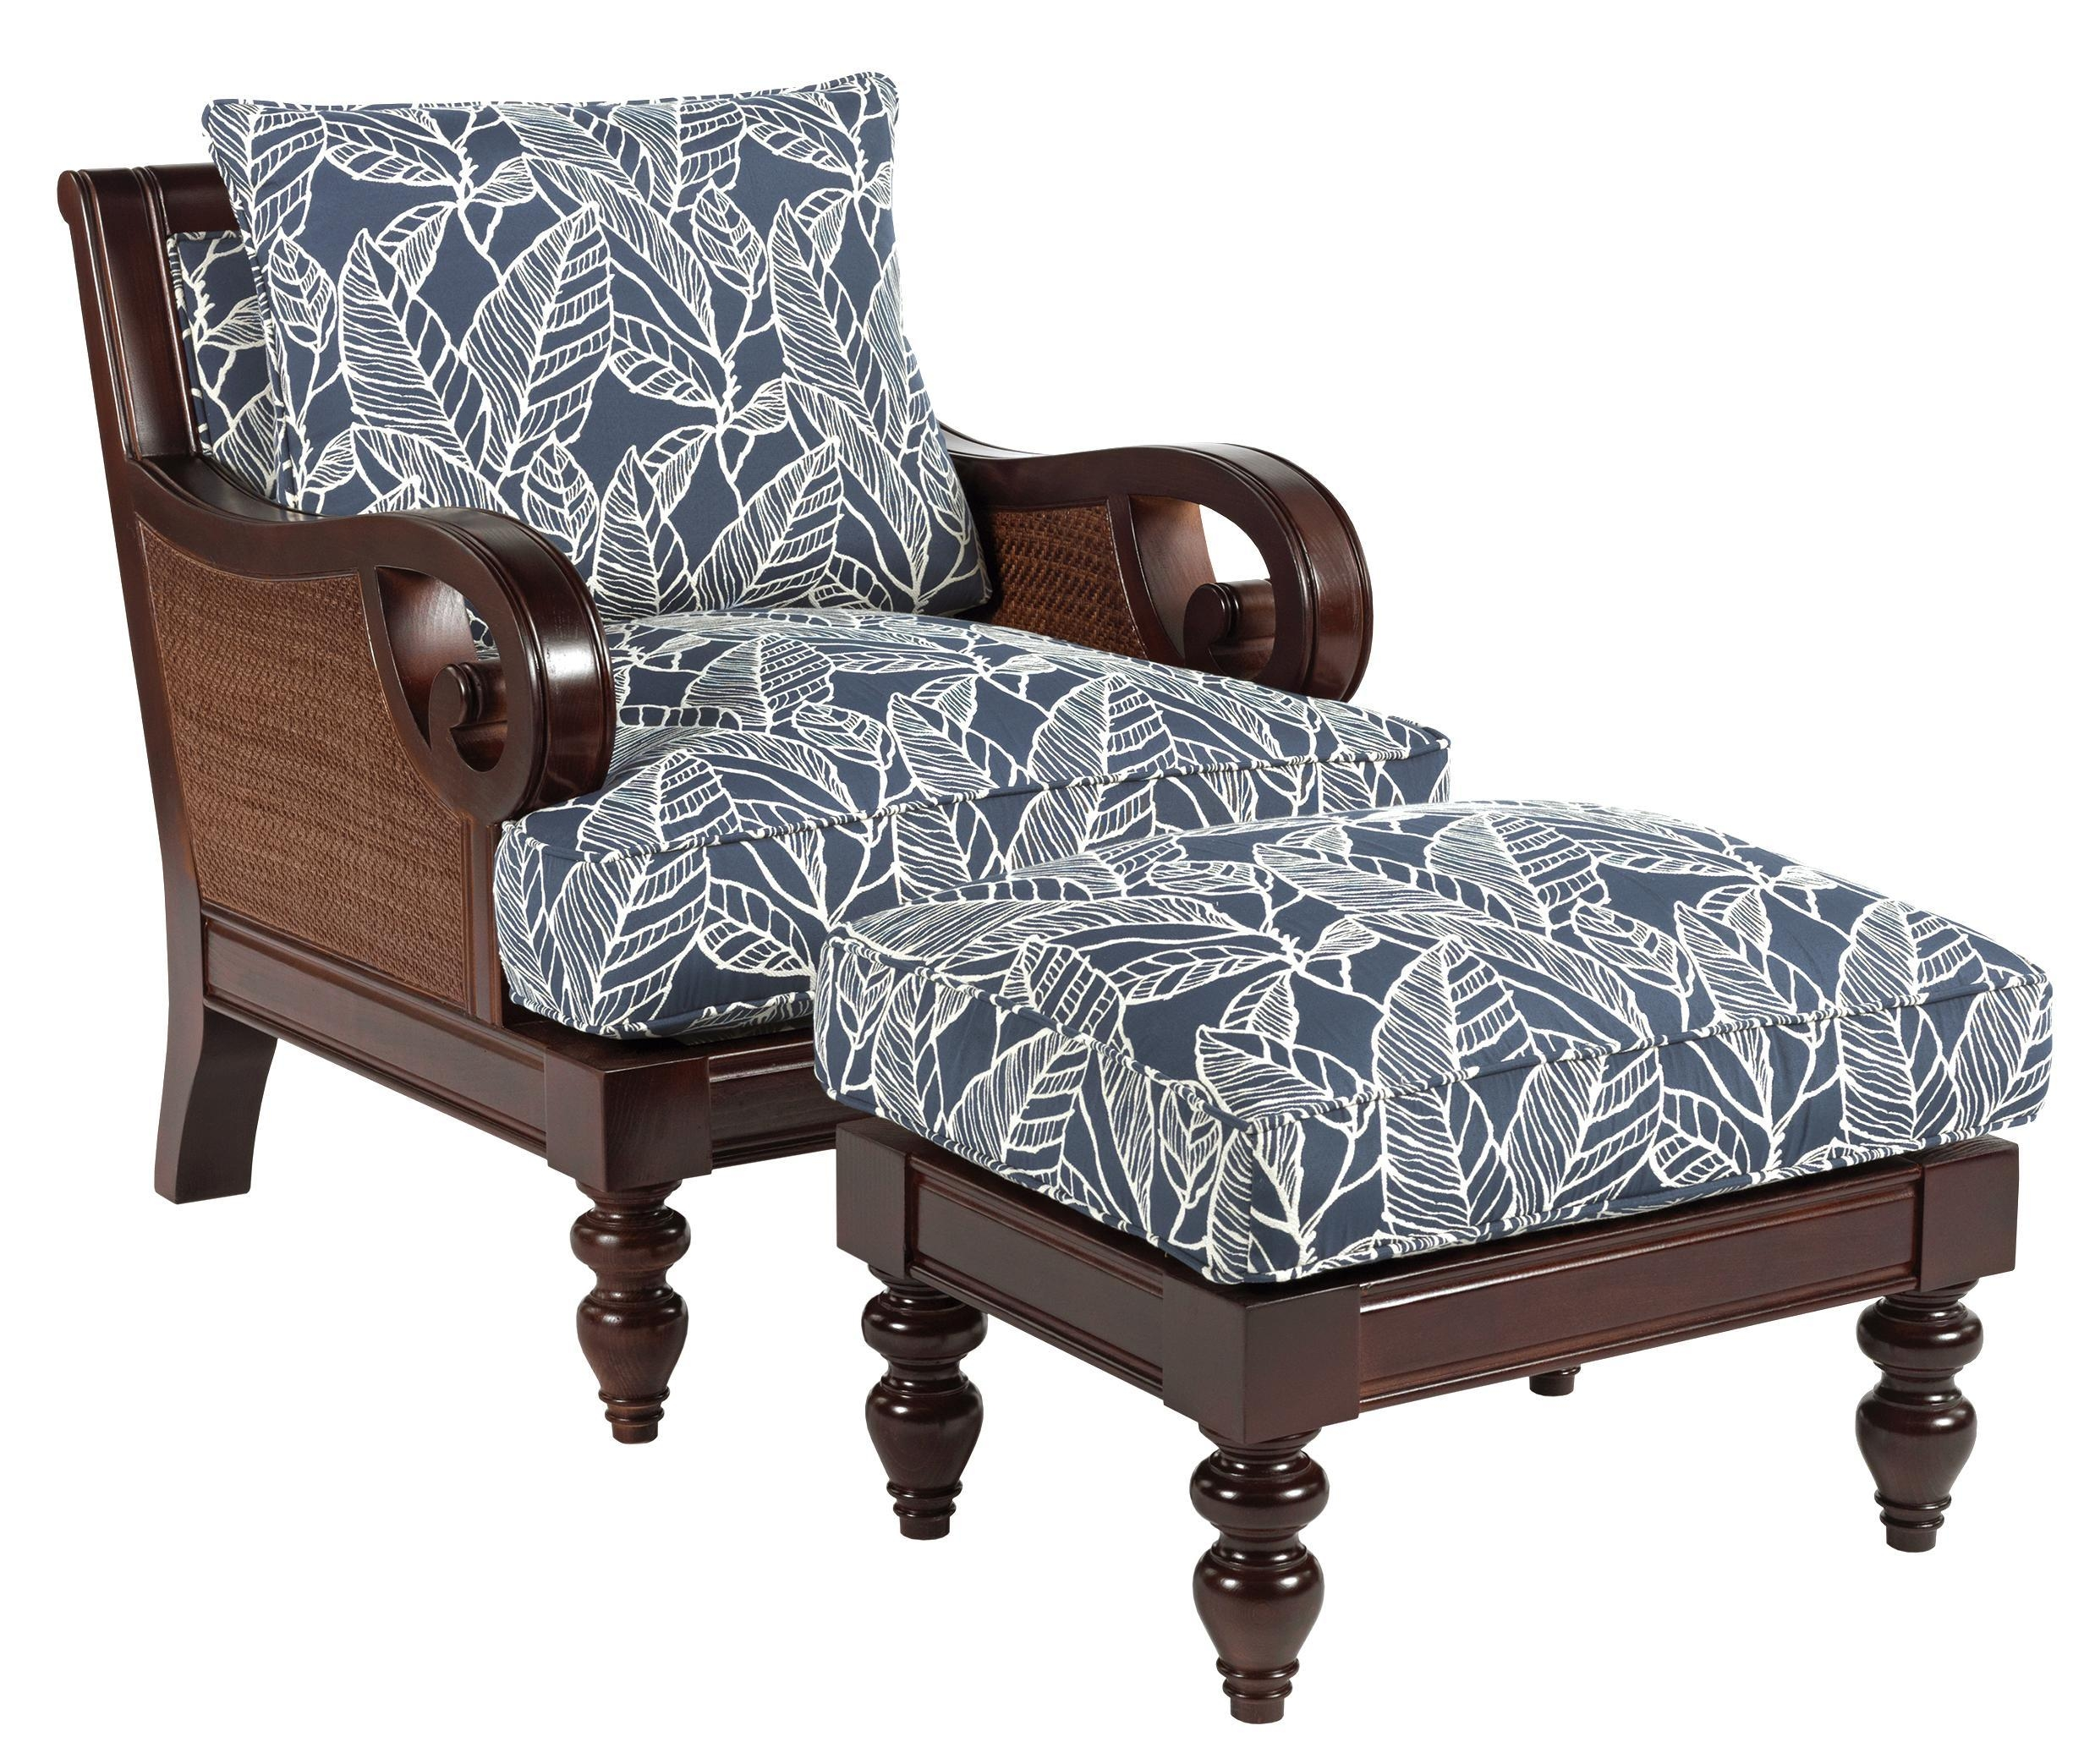 Sam Moore Tailynn Tropical Sofa With Exposed Wood And Scrolled With Sam Moore Sofas (View 16 of 20)